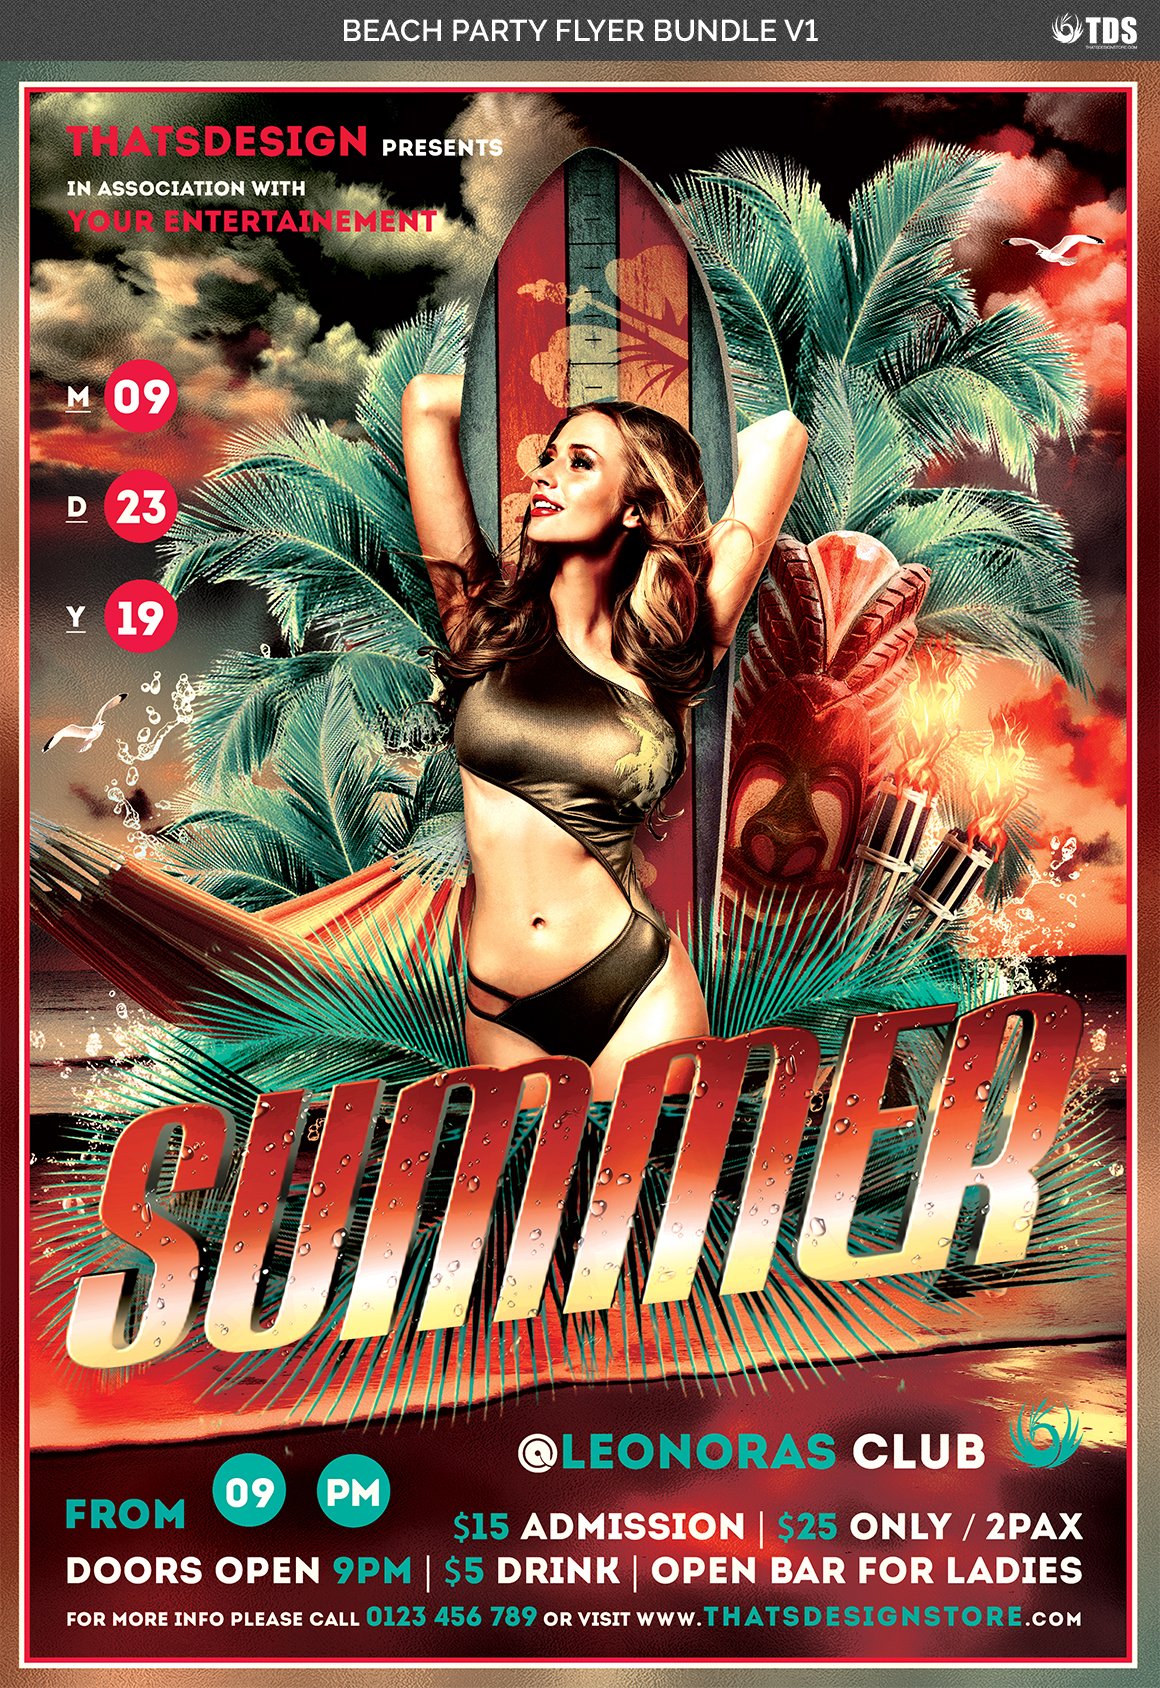 Beach Party Flyer Bundle V1 example image 5